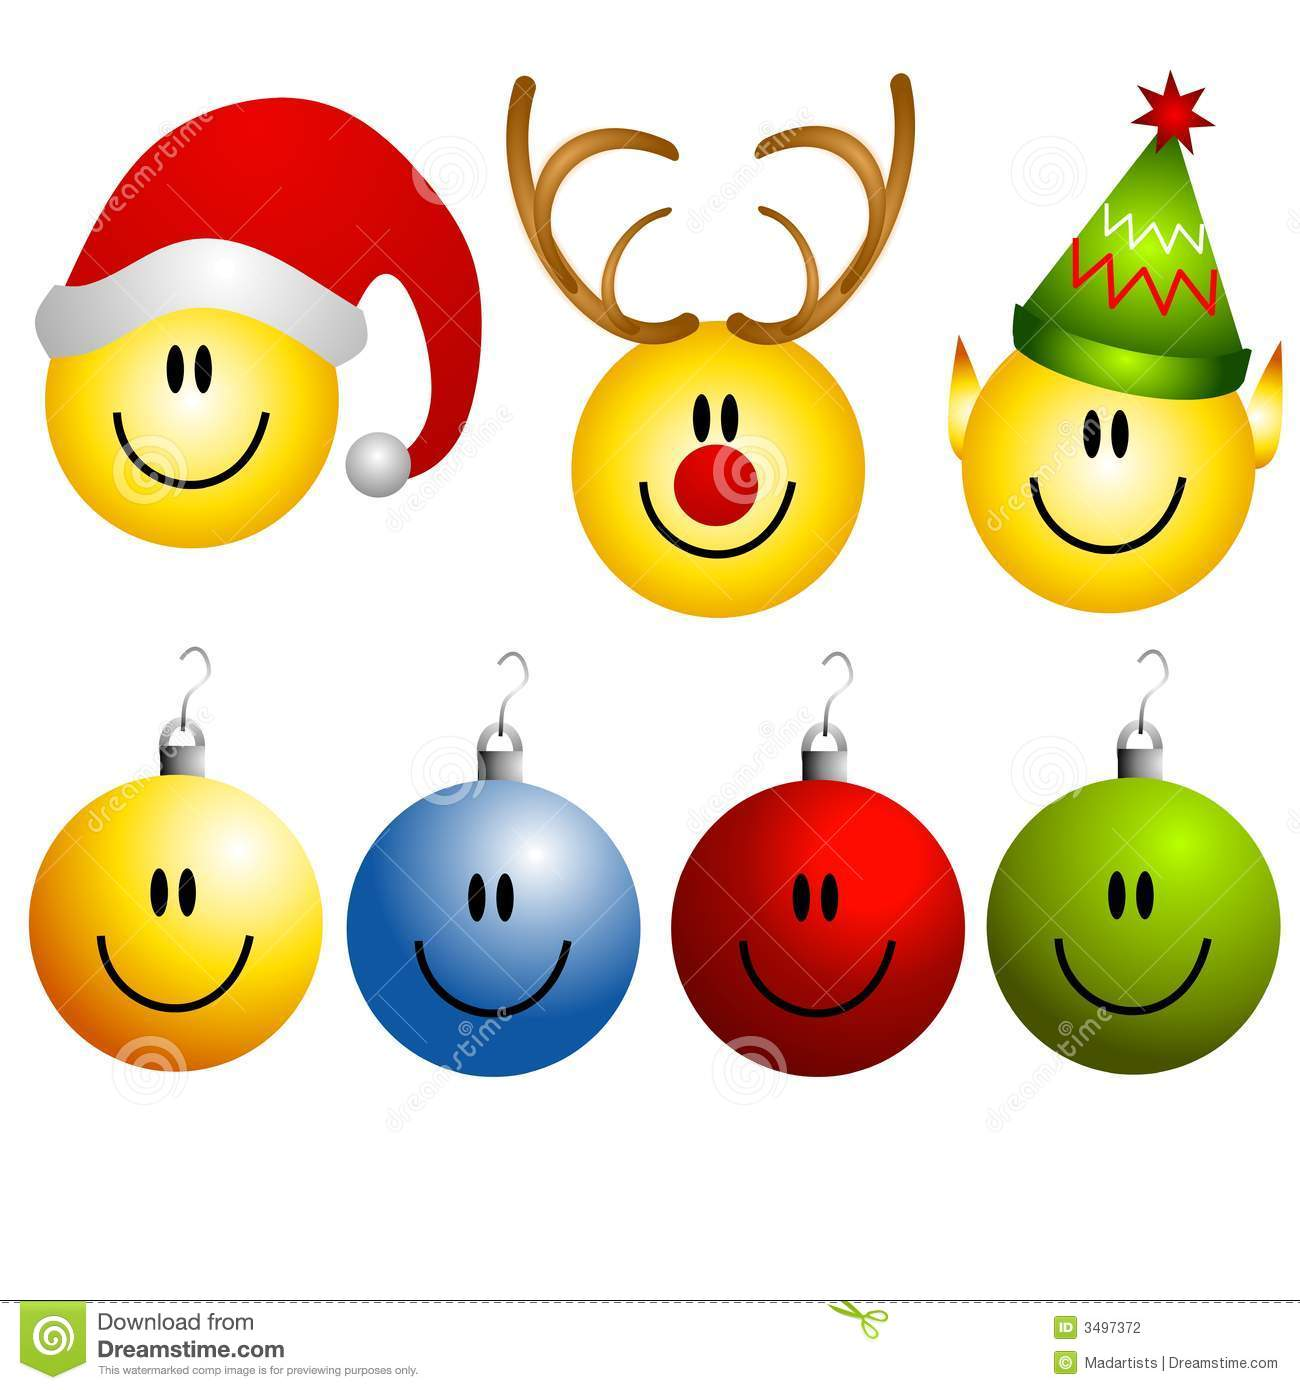 clip art illustration of a collection of Christmas smileys and icons ...